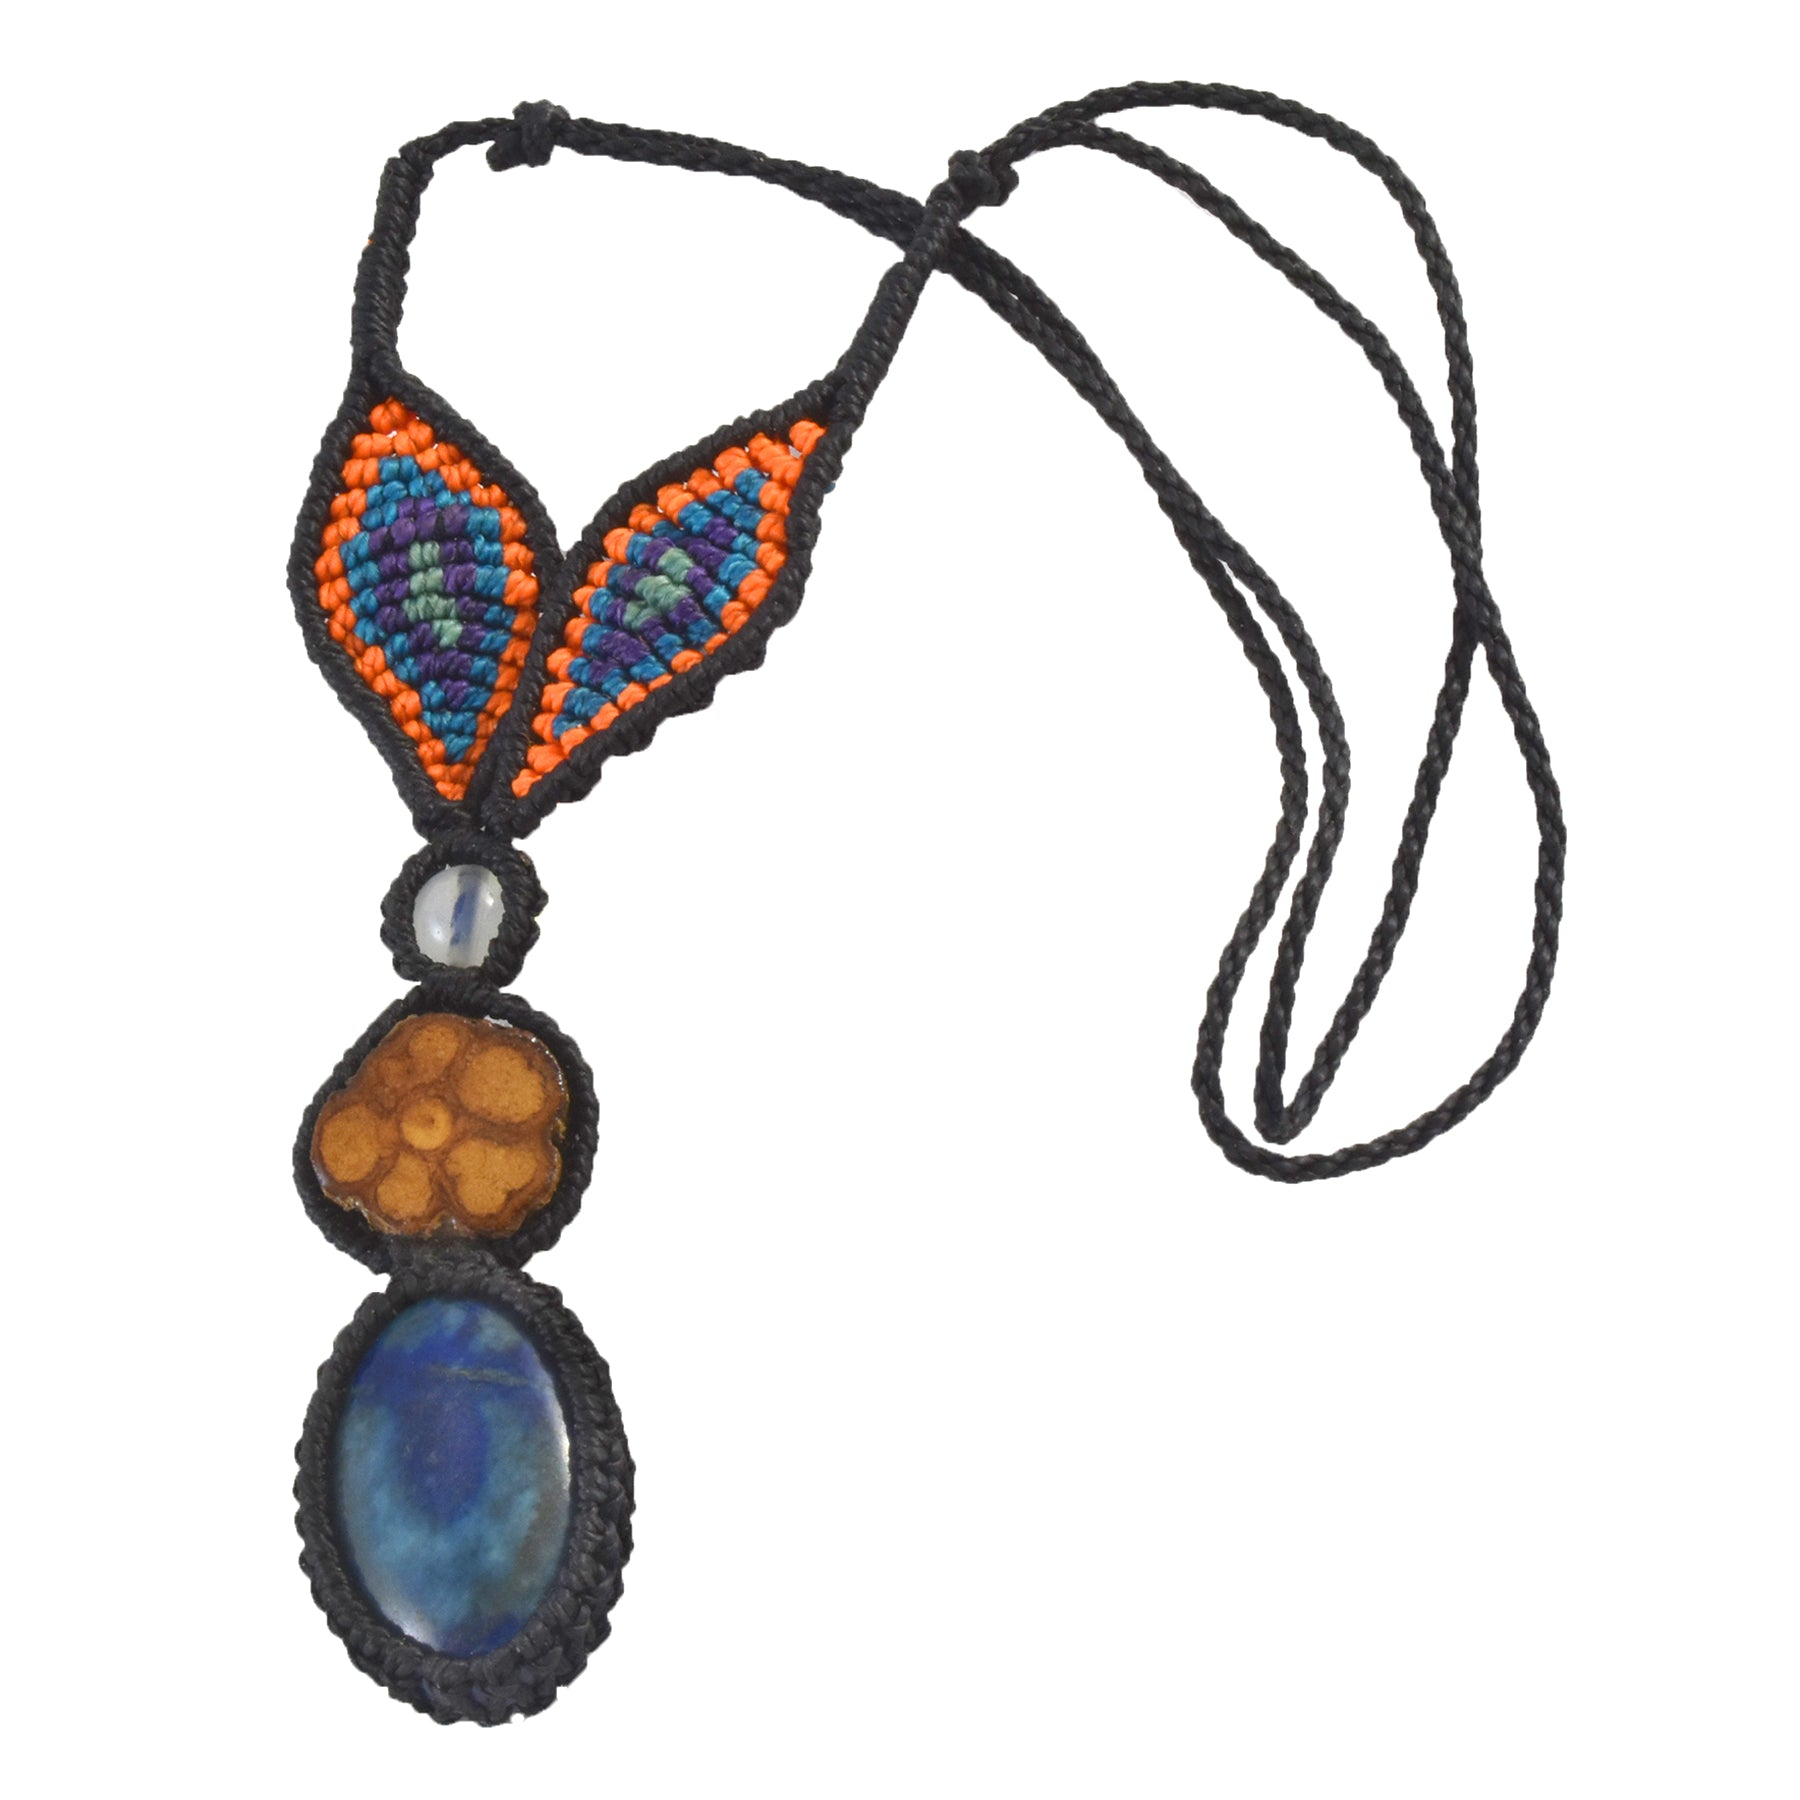 Ayahuasca vine and lapis lazuli macrame necklace with woven leaves